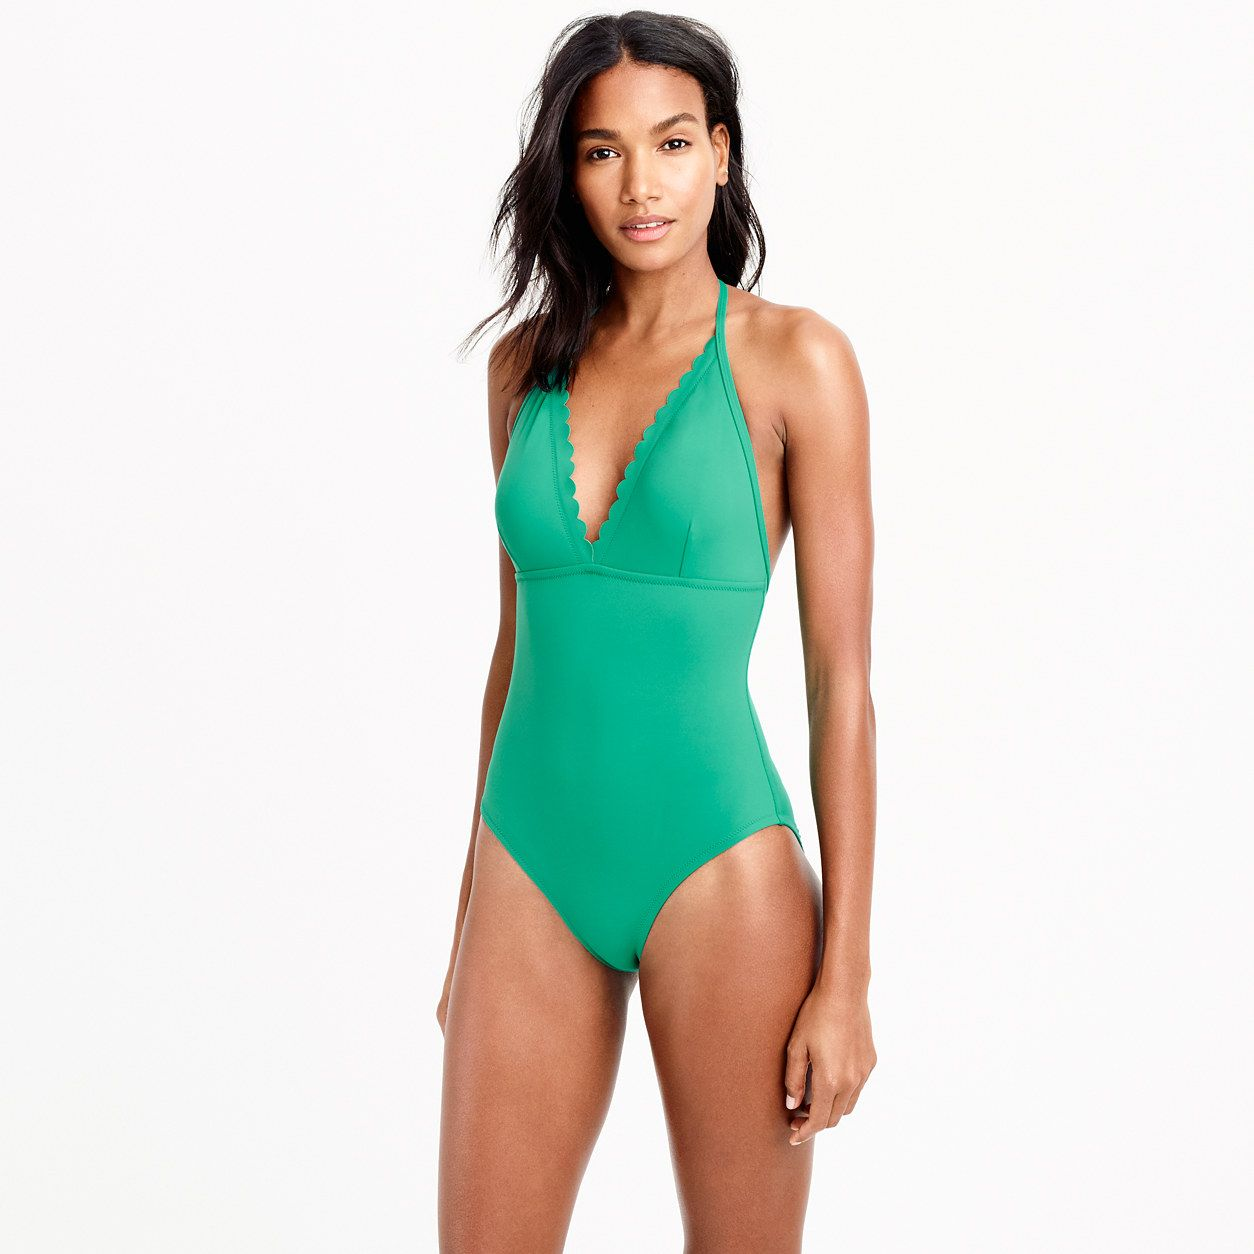 428f7eee42 J.Crew Womens Scalloped V-Neck One-Piece Swimsuit In Italian Matte (Bright  Jade, Size 0)